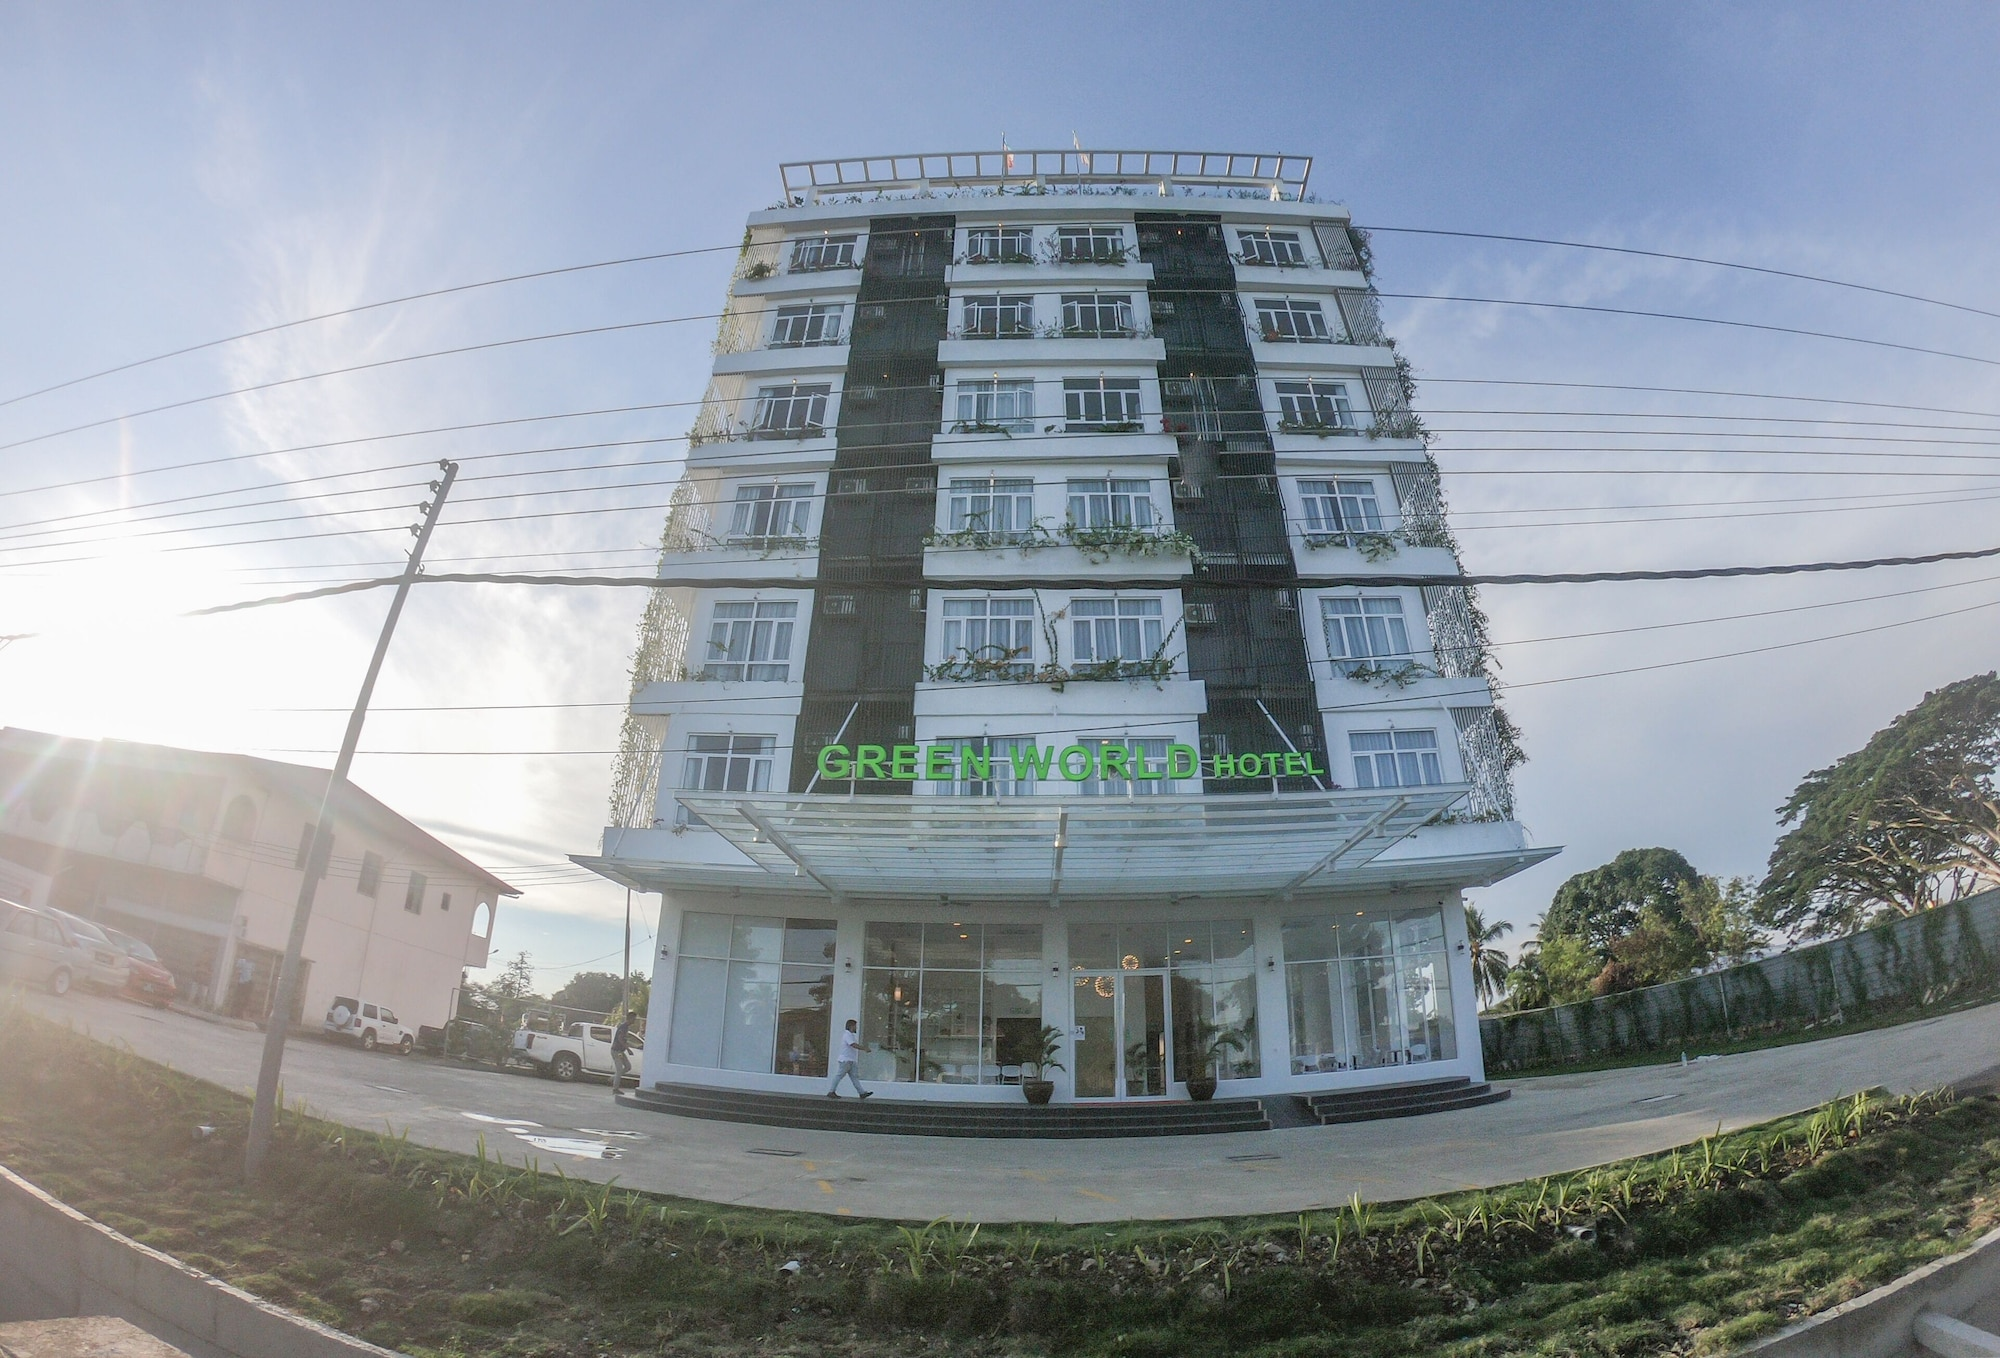 Green World Hotel, Semporna